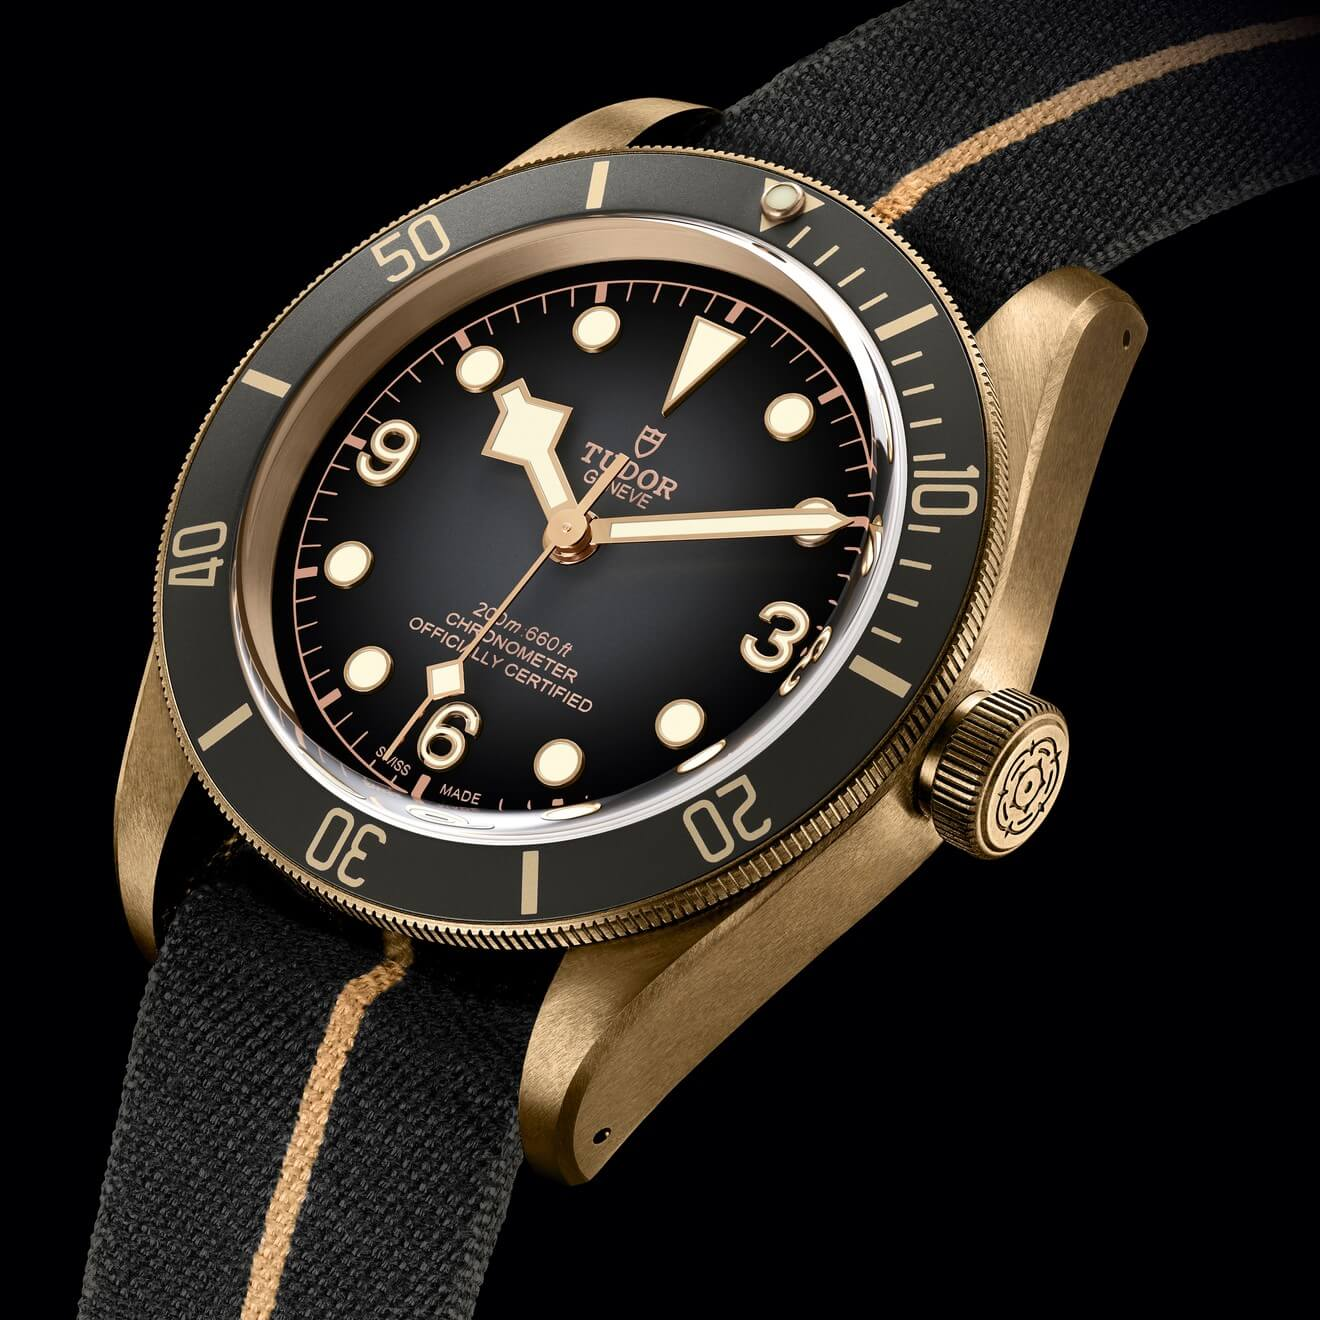 Tudor Black Bay Bronze 79250BA Baselworld 2019 | Mamic 1970